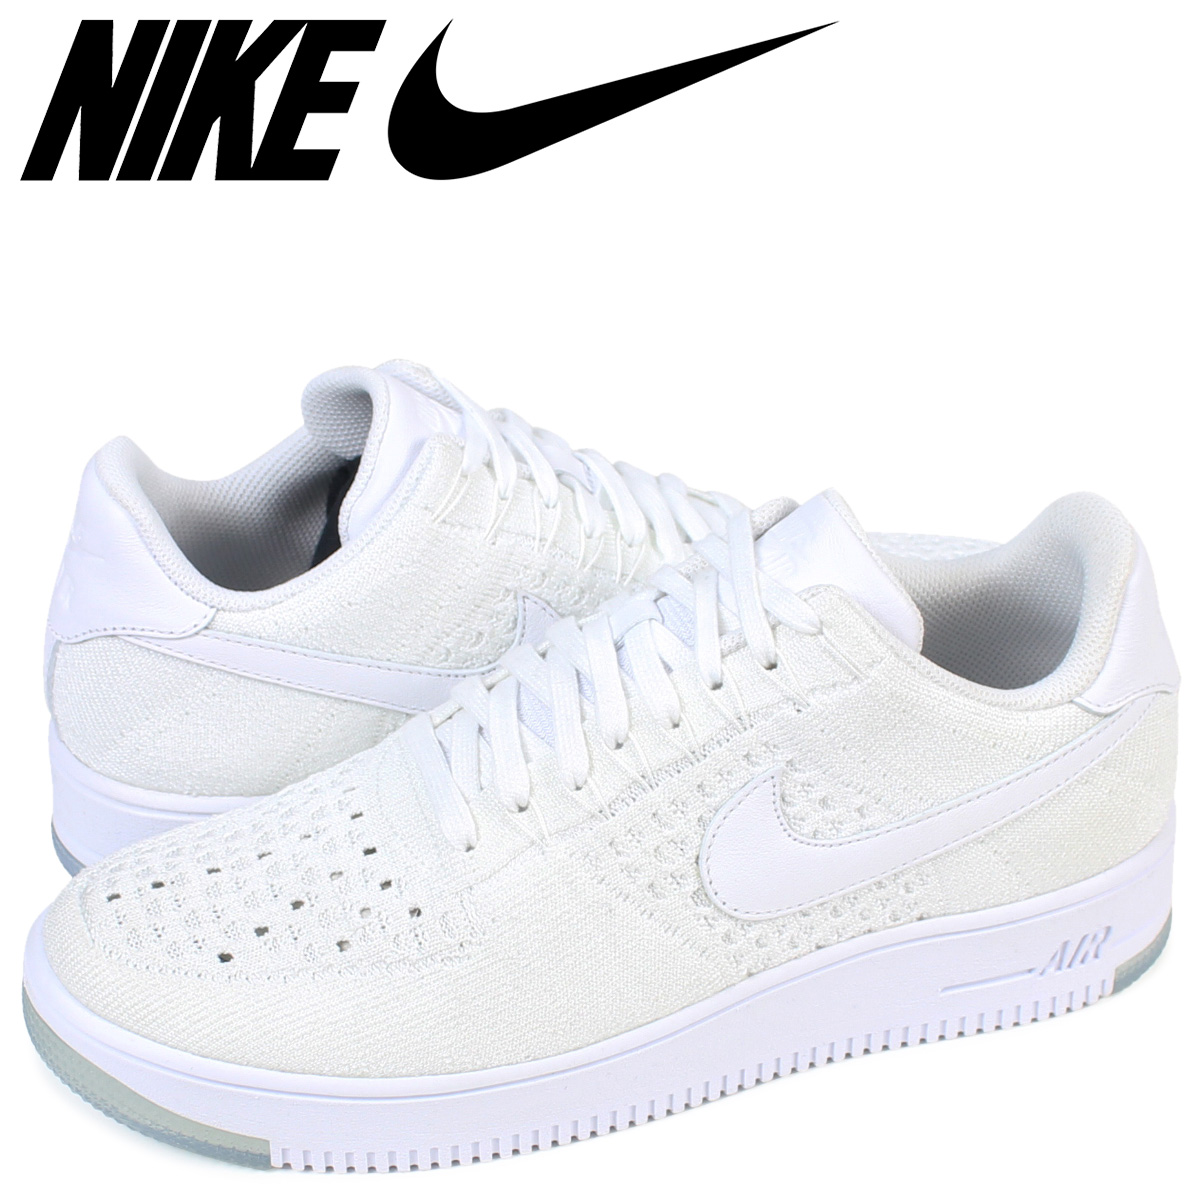 NIKE AIR FORCE 1 ULTRA FLYKNIT LOW Nike air force 1 fly knit sneakers  817 ed1de0be6a